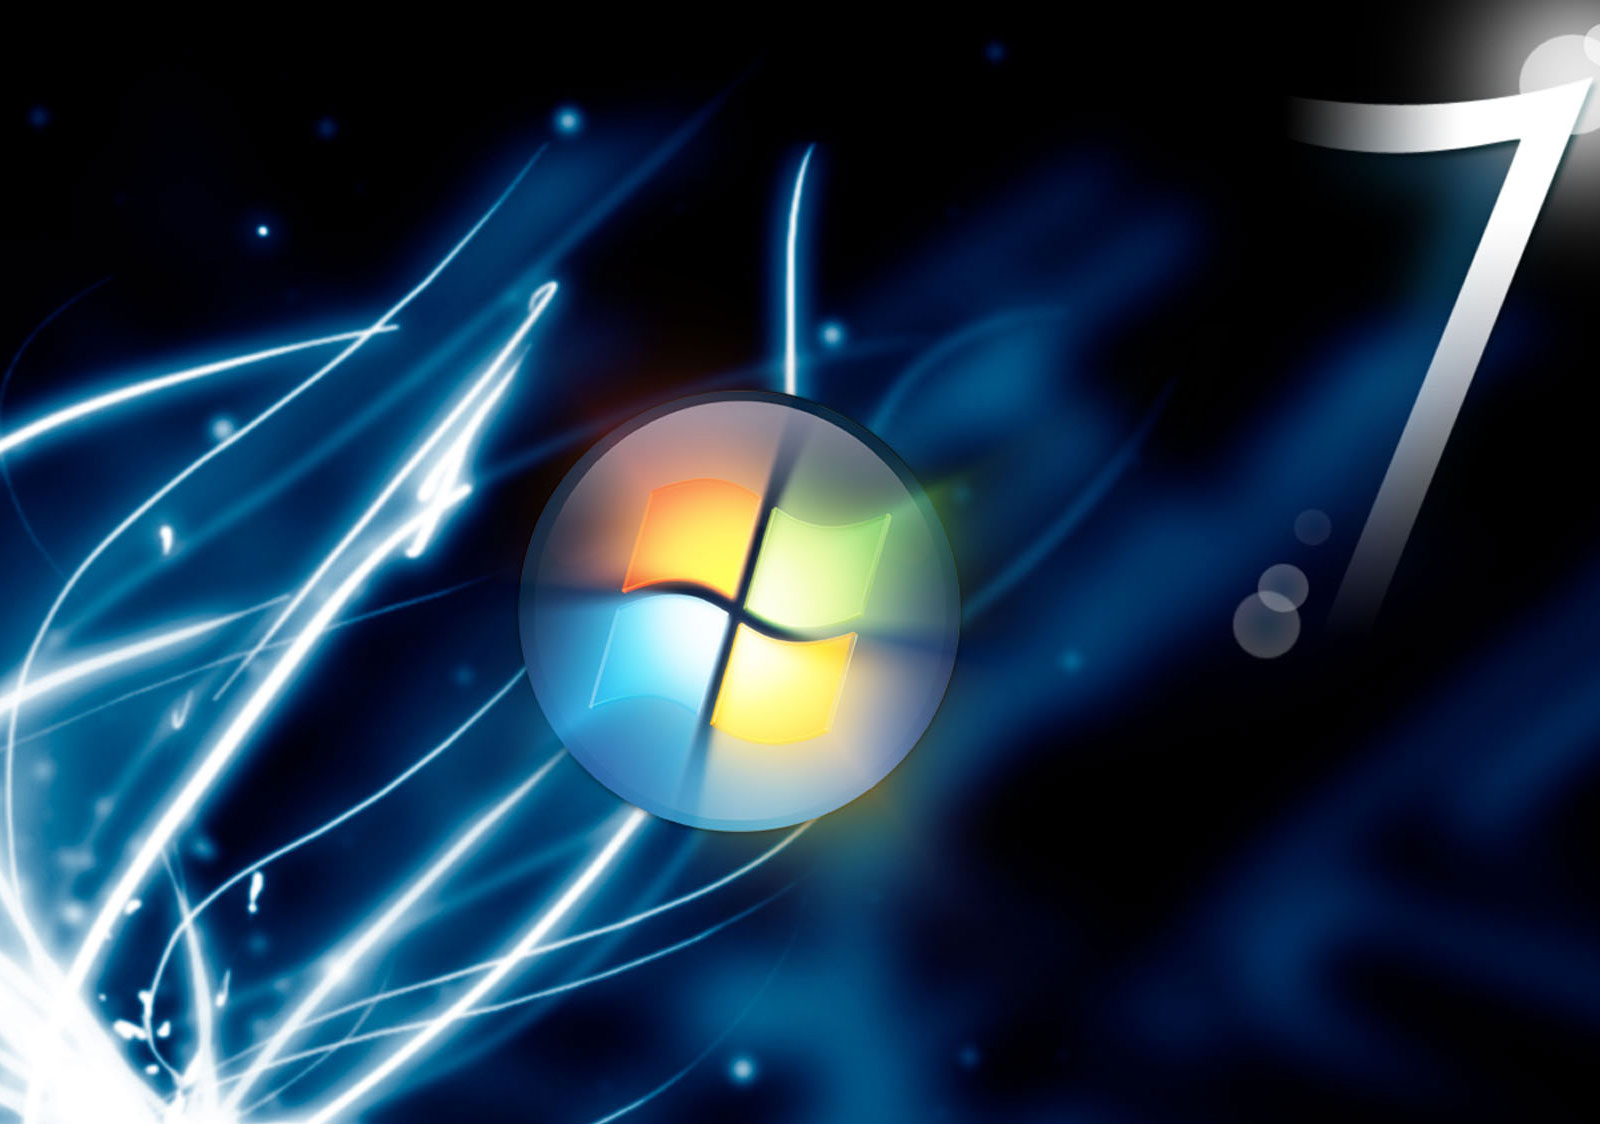 Windows 7 Desktop Wallpapers Group (92+)